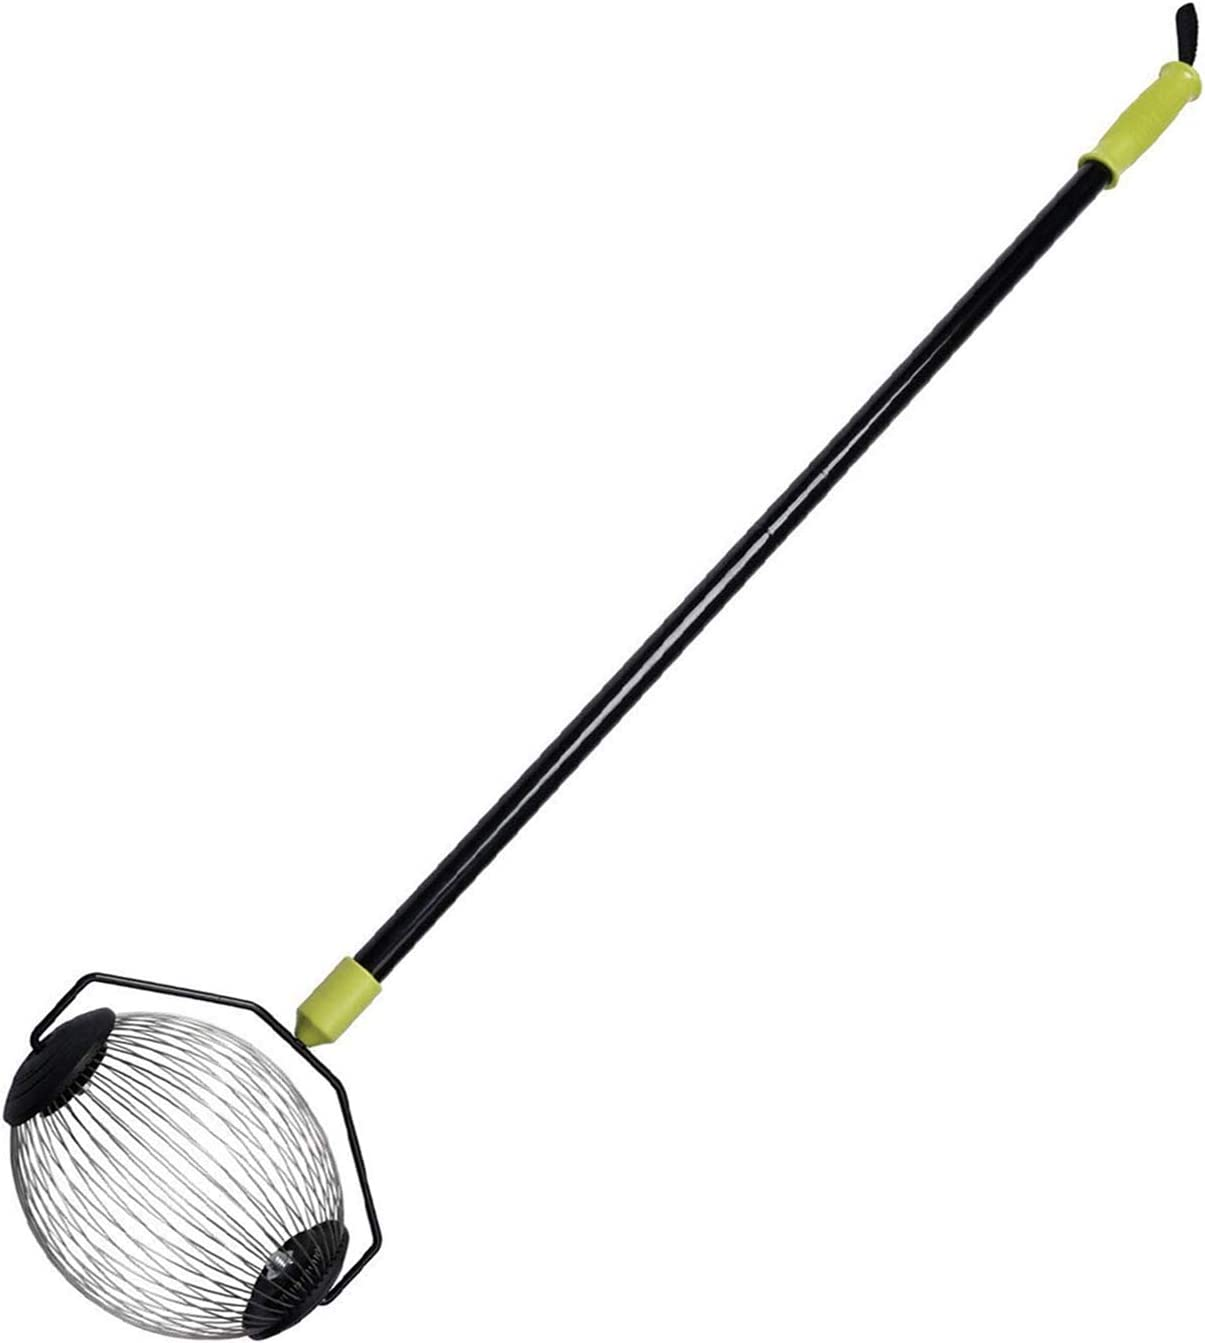 """ORIENTOOLS Nut Gatherer, Garden Rolling Nut Harvester, Picks up Balls, Pecans, Crab Apples, Acorns, Hickory Nuts & Other Objects 3/4"""" to 1 1/2"""" in Size, Medium, 48 inches"""